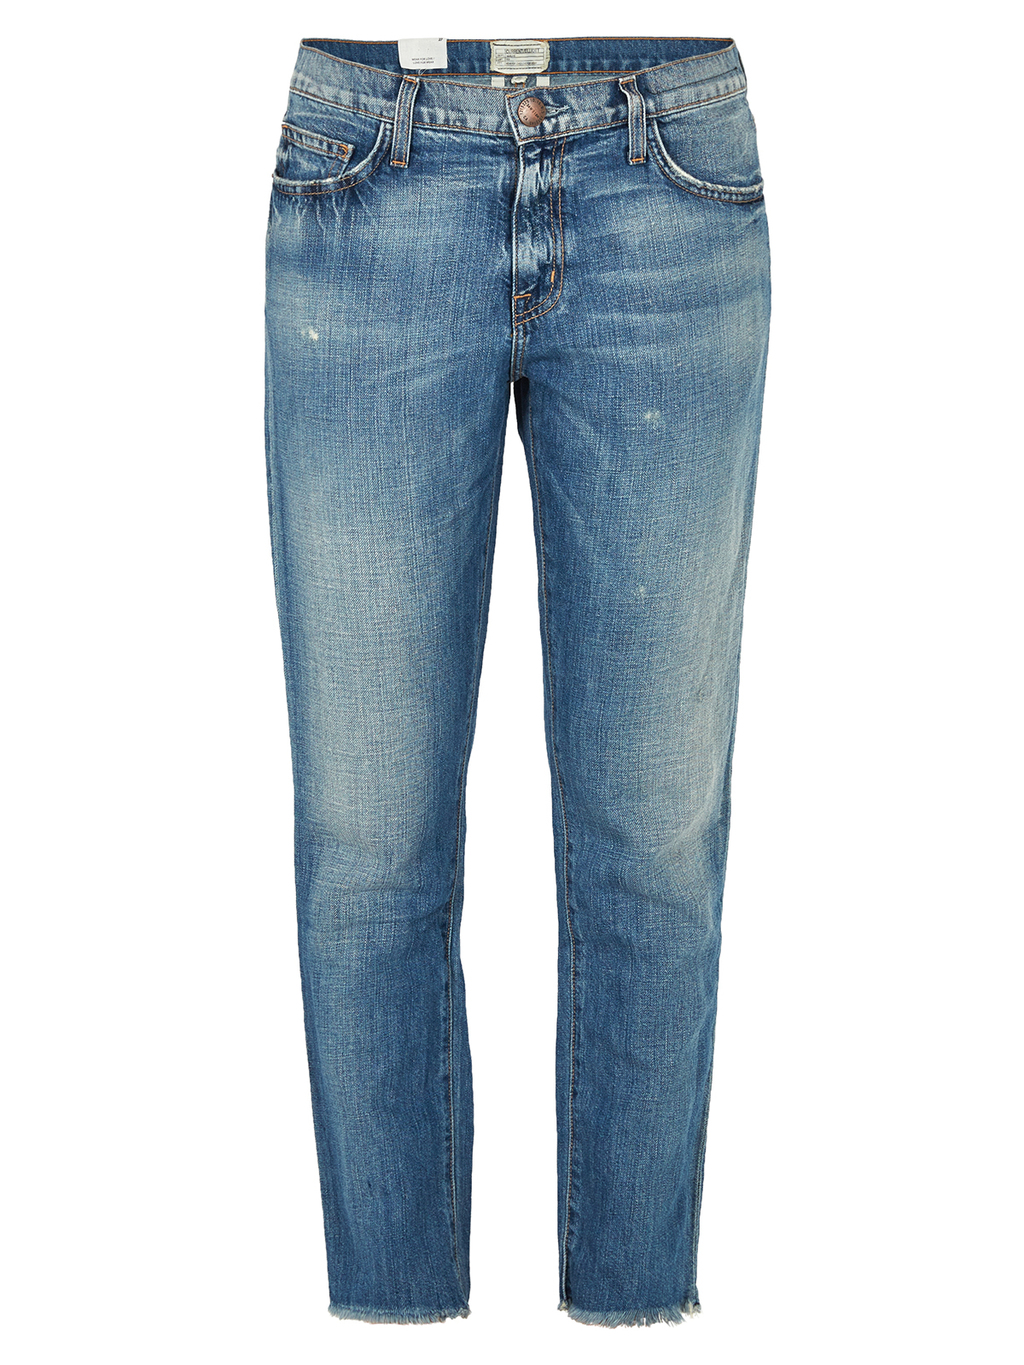 Unrolled Fling Jean - style: straight leg; length: standard; pattern: plain; pocket detail: traditional 5 pocket; waist: mid/regular rise; predominant colour: denim; occasions: casual; fibres: cotton - stretch; jeans detail: washed/faded; texture group: denim; pattern type: fabric; season: s/s 2016